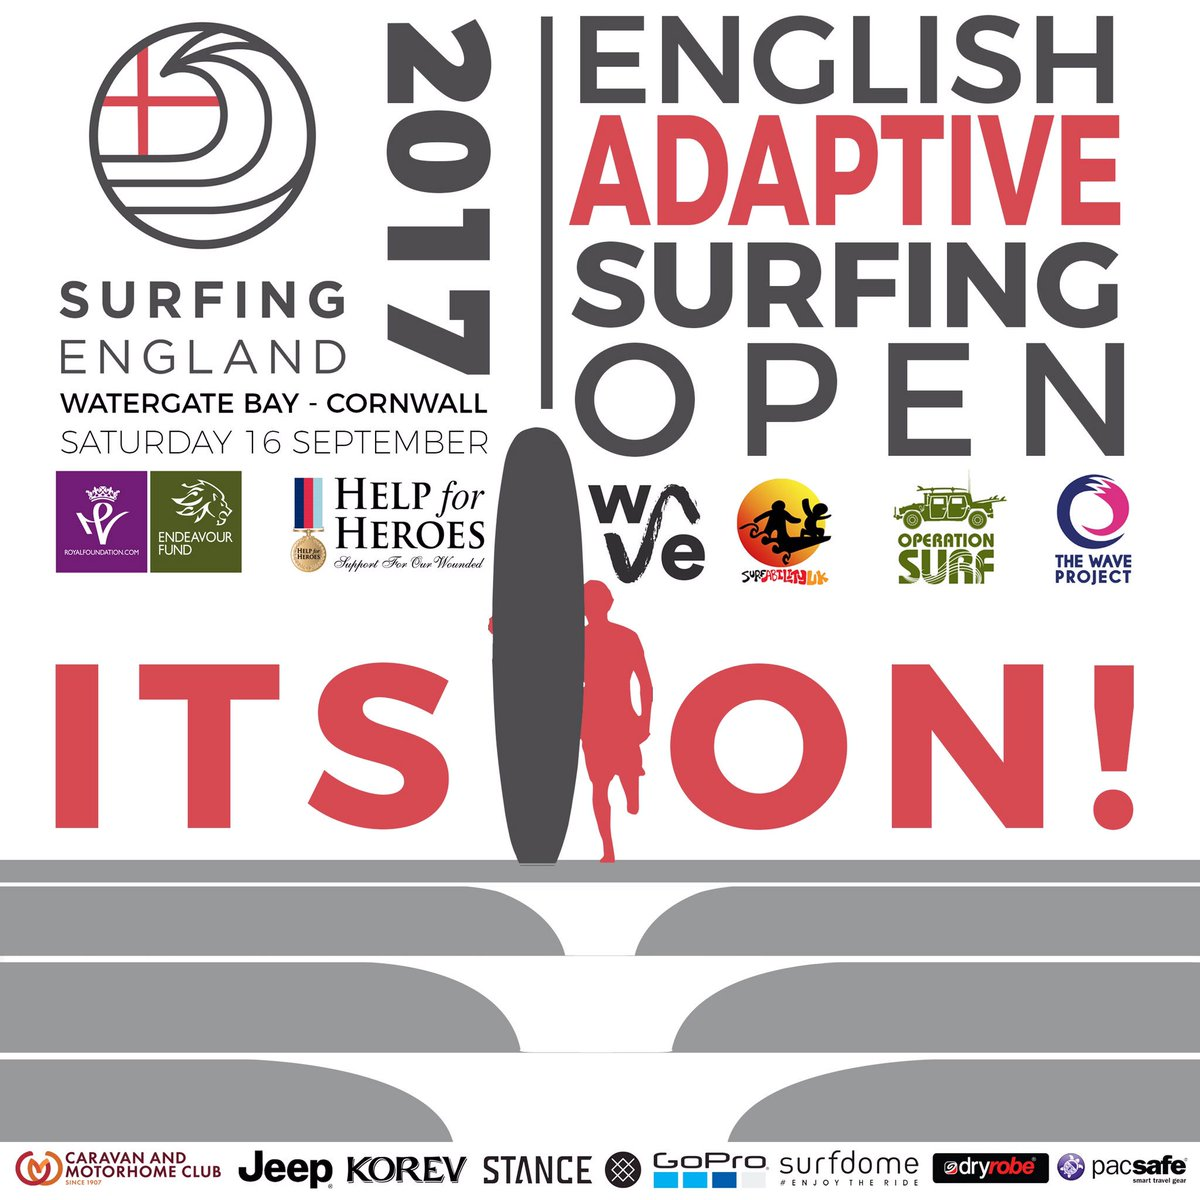 Surfing England on Twitter